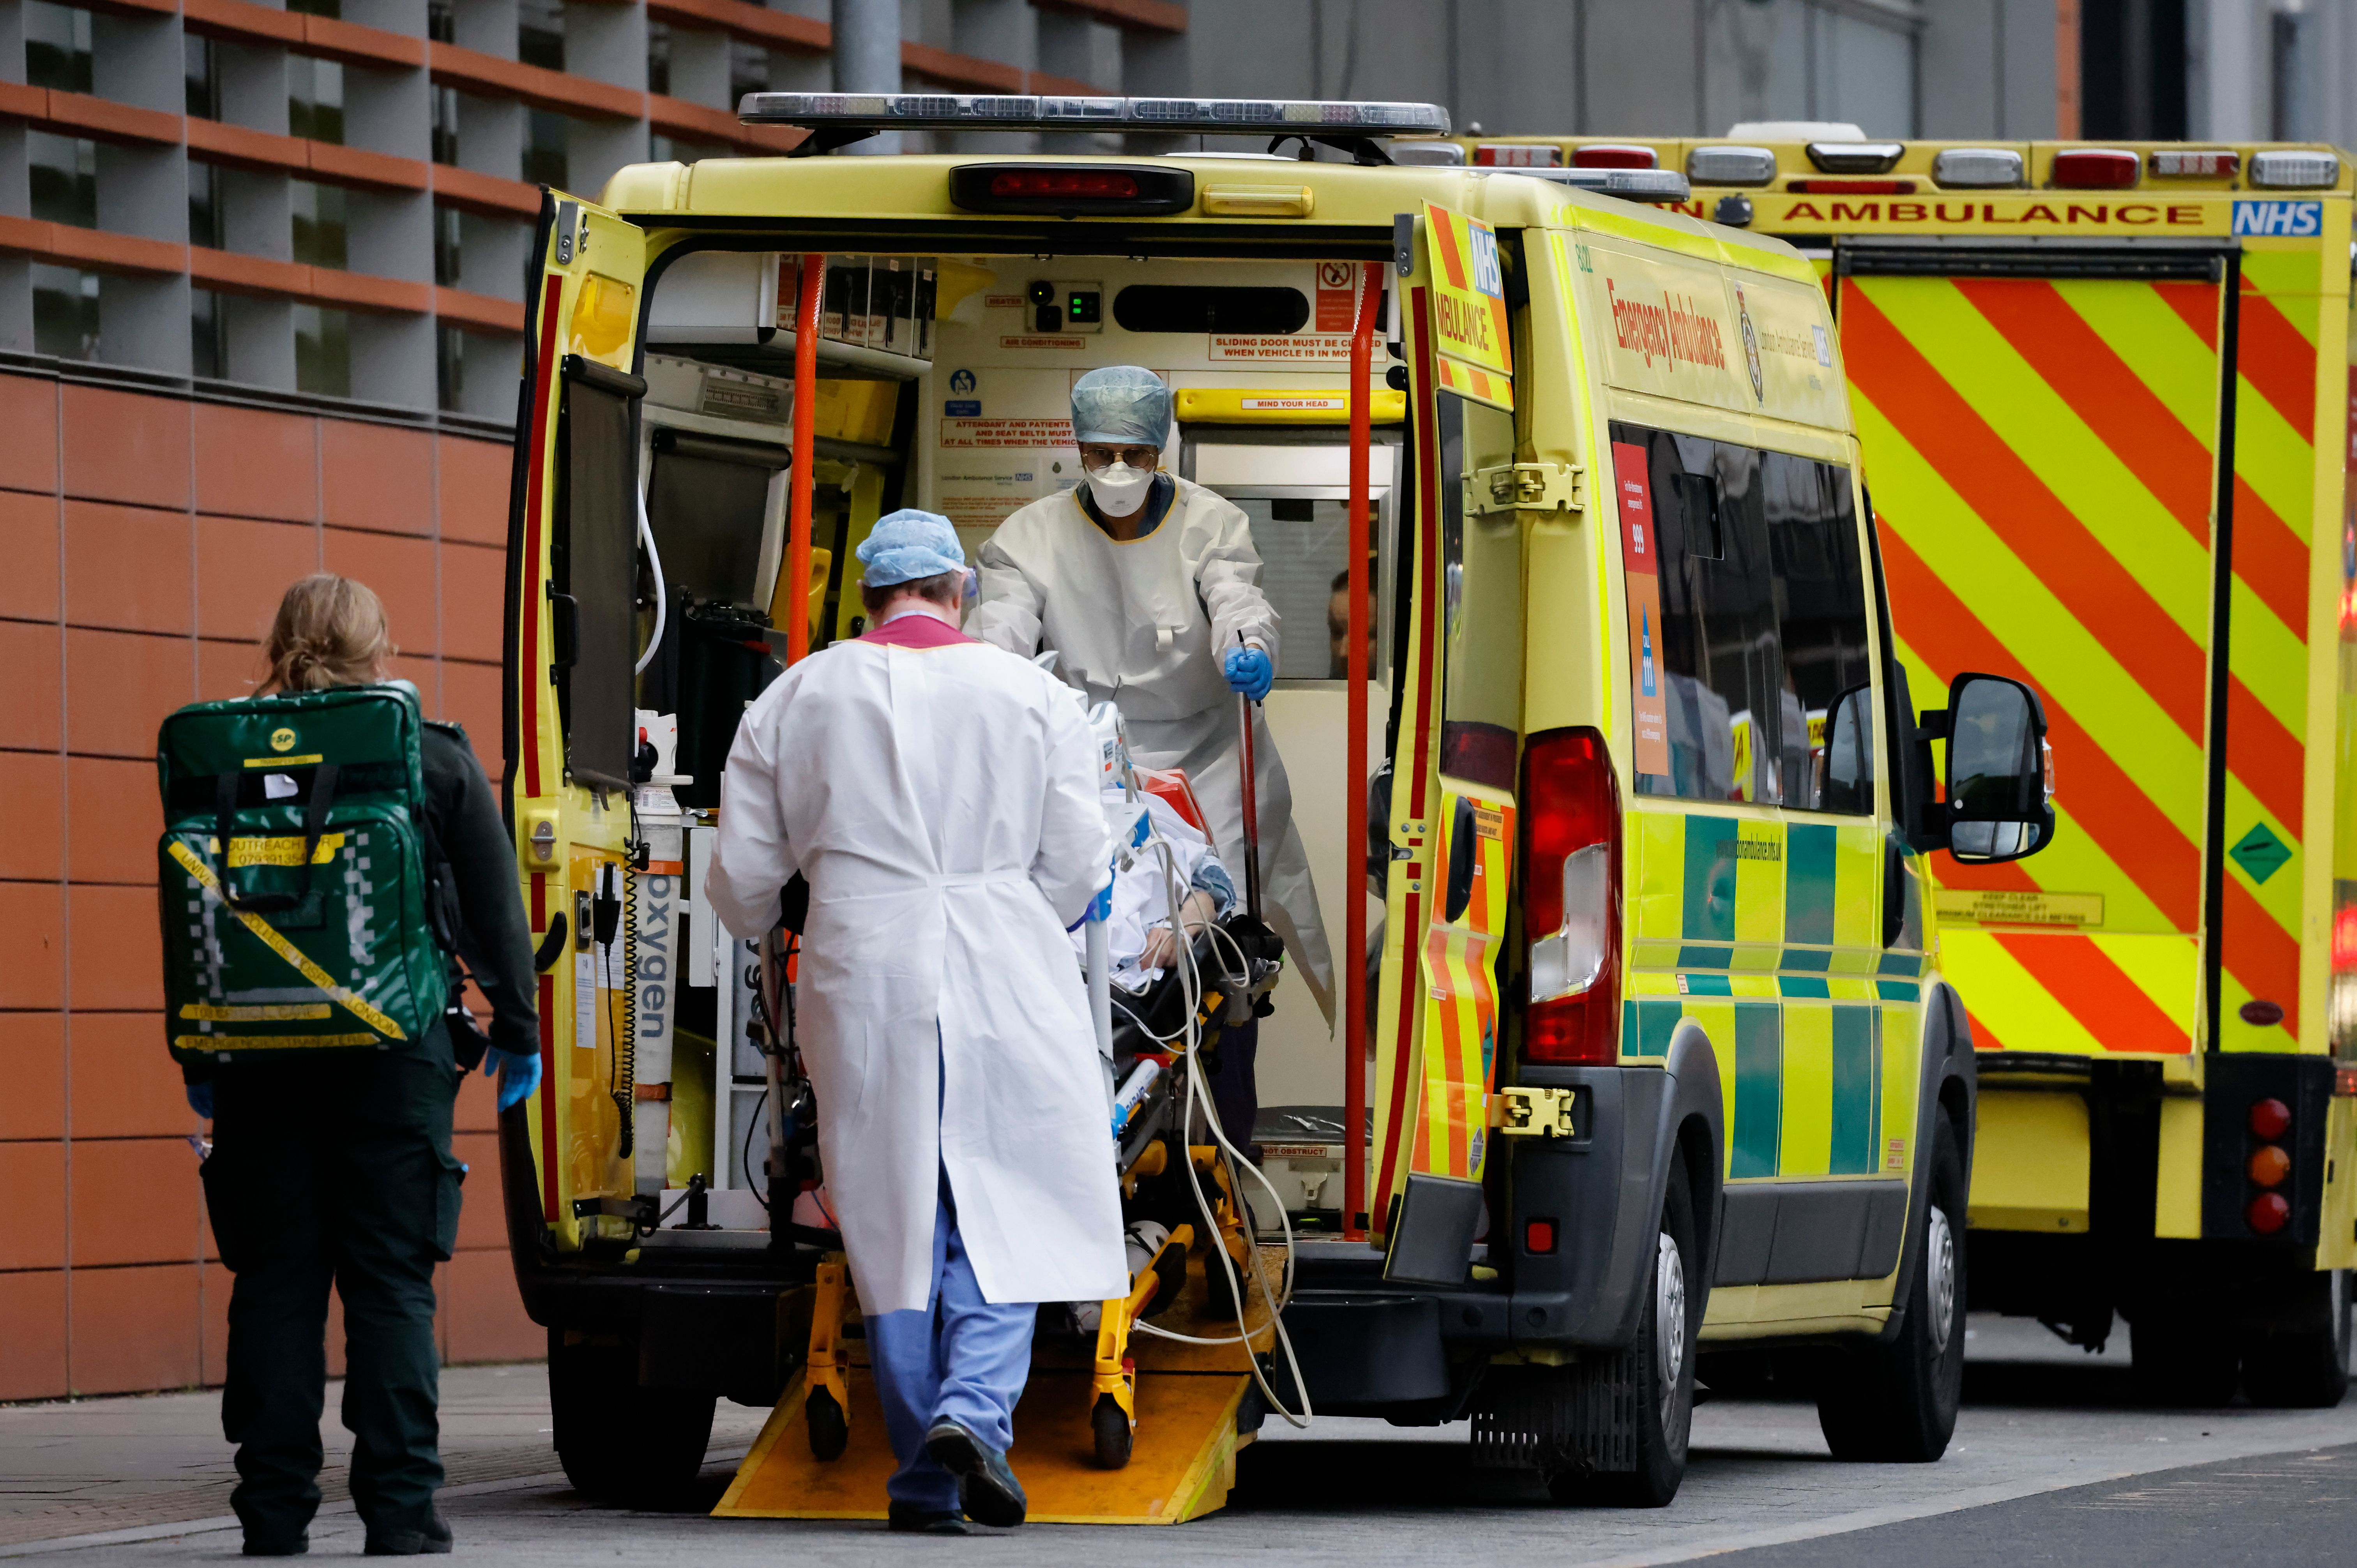 Medics take a patient from an ambulance into a London hospital on Tuesday.